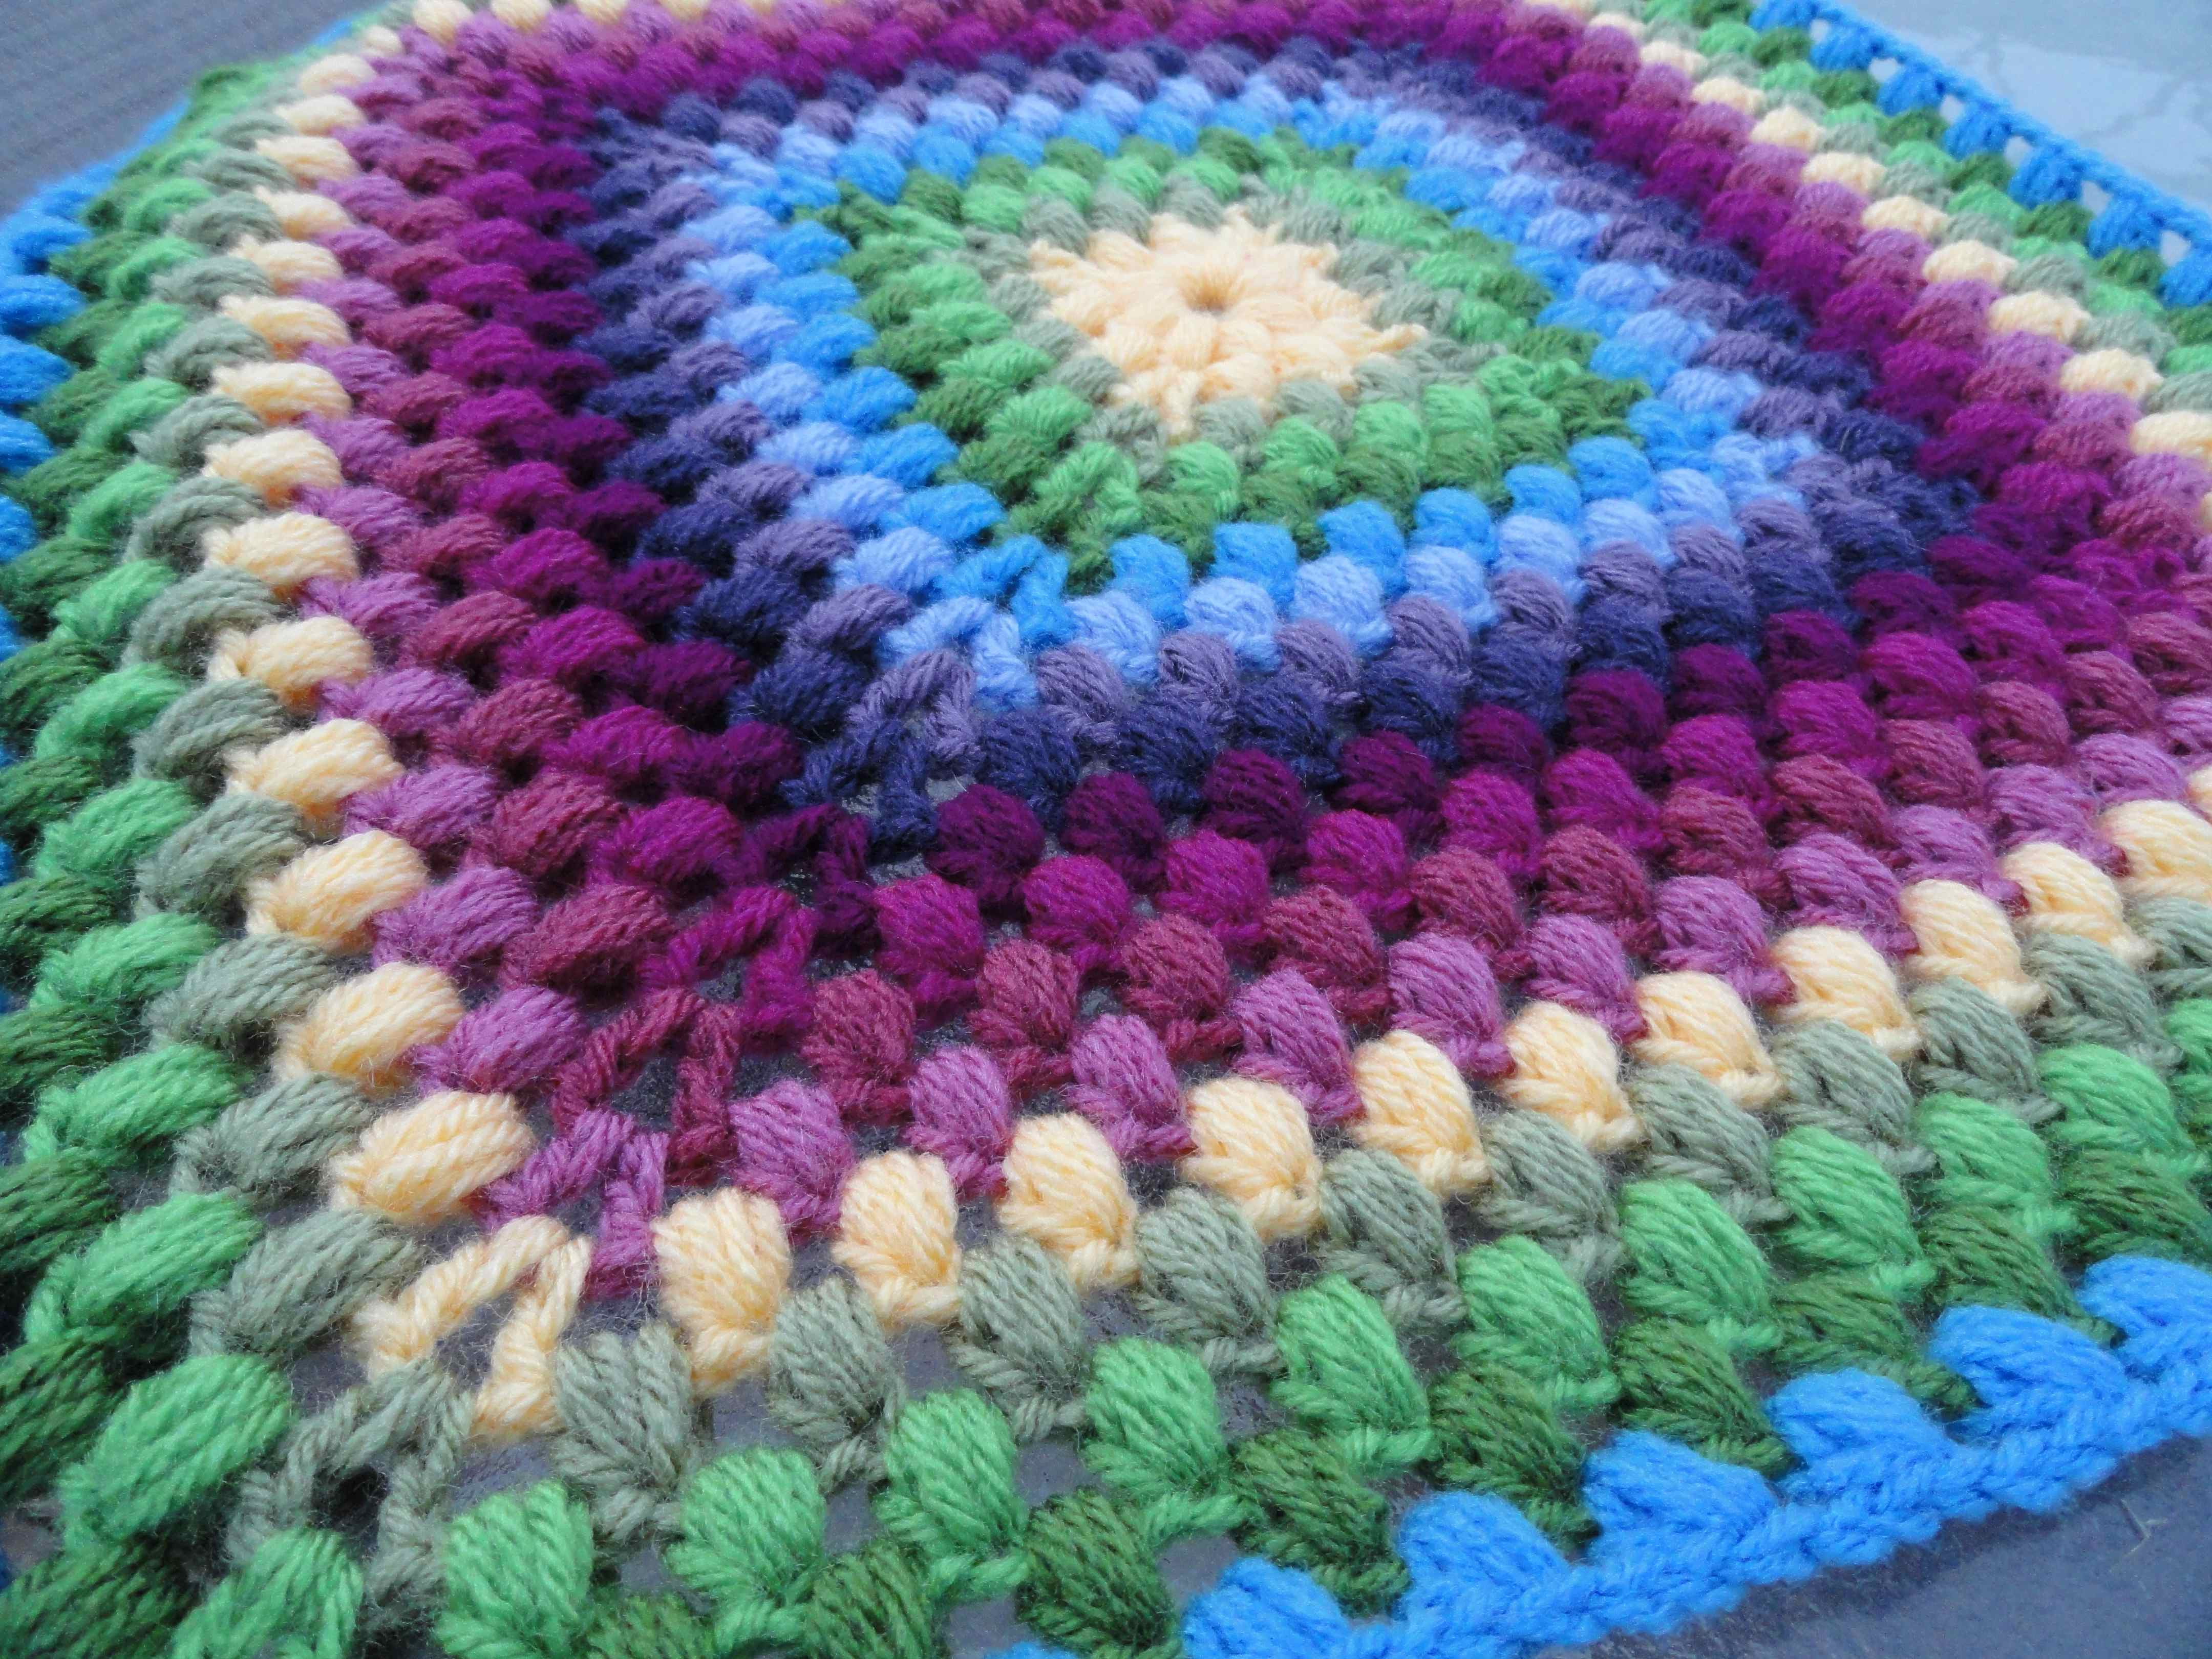 CROCHETED SQUARE PATTERNS Free Patterns